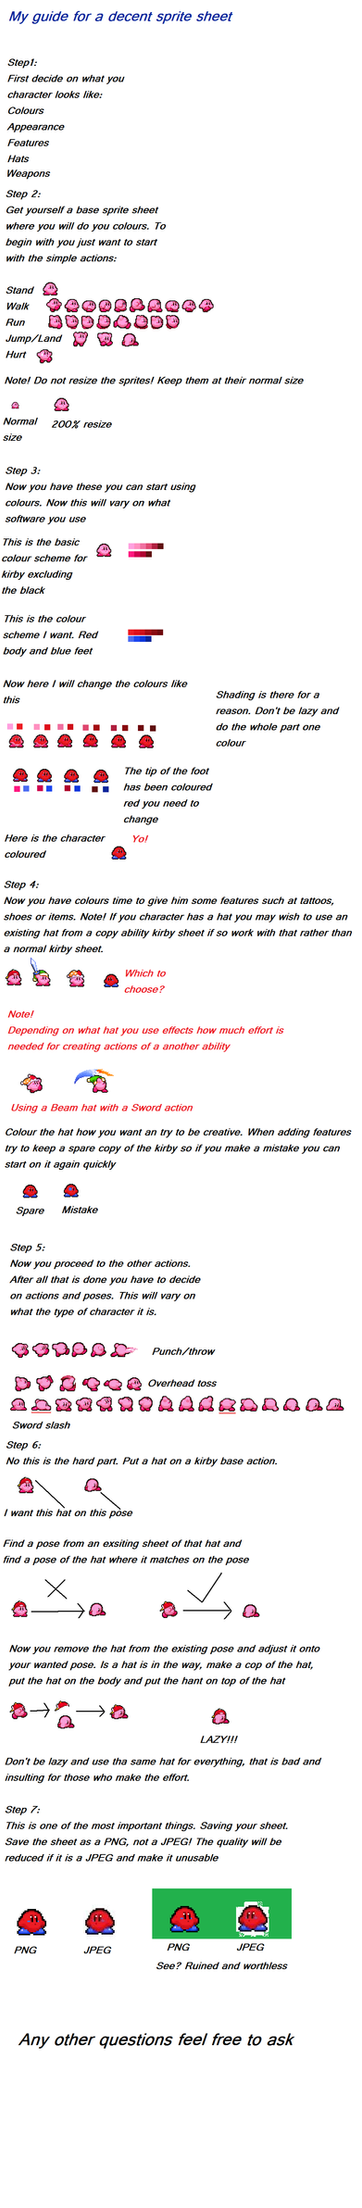 Kirby sprite sheet tutorial by BioMetalNeo